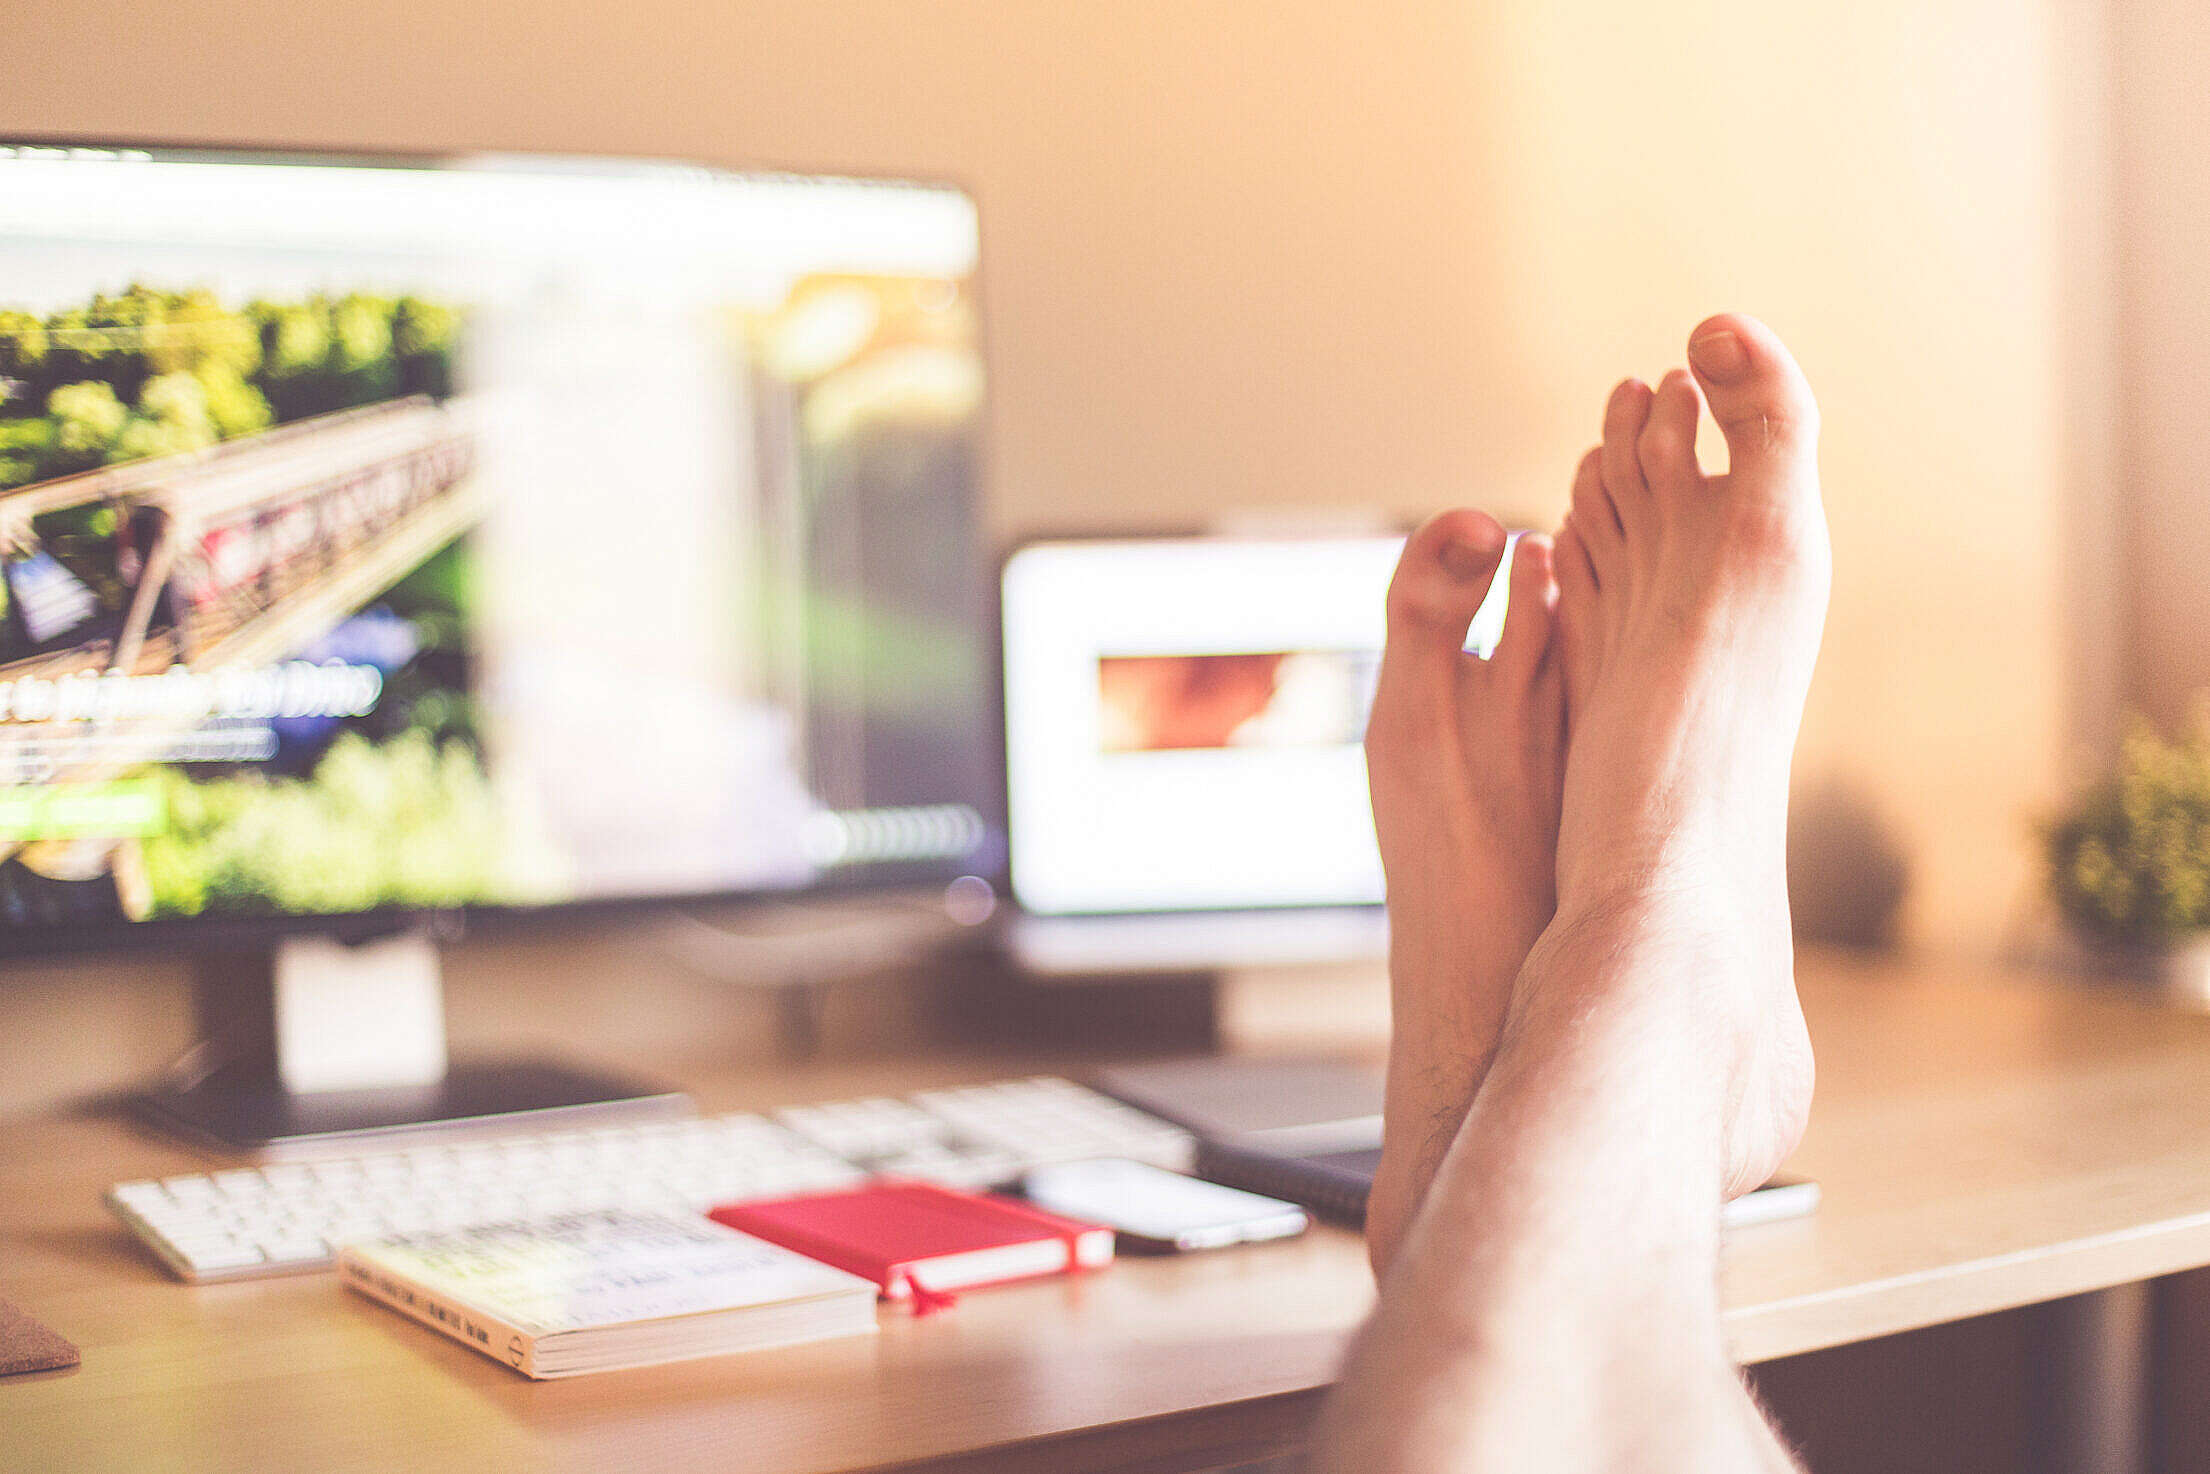 Legs on The Table: All Work Done! Free Stock Photo